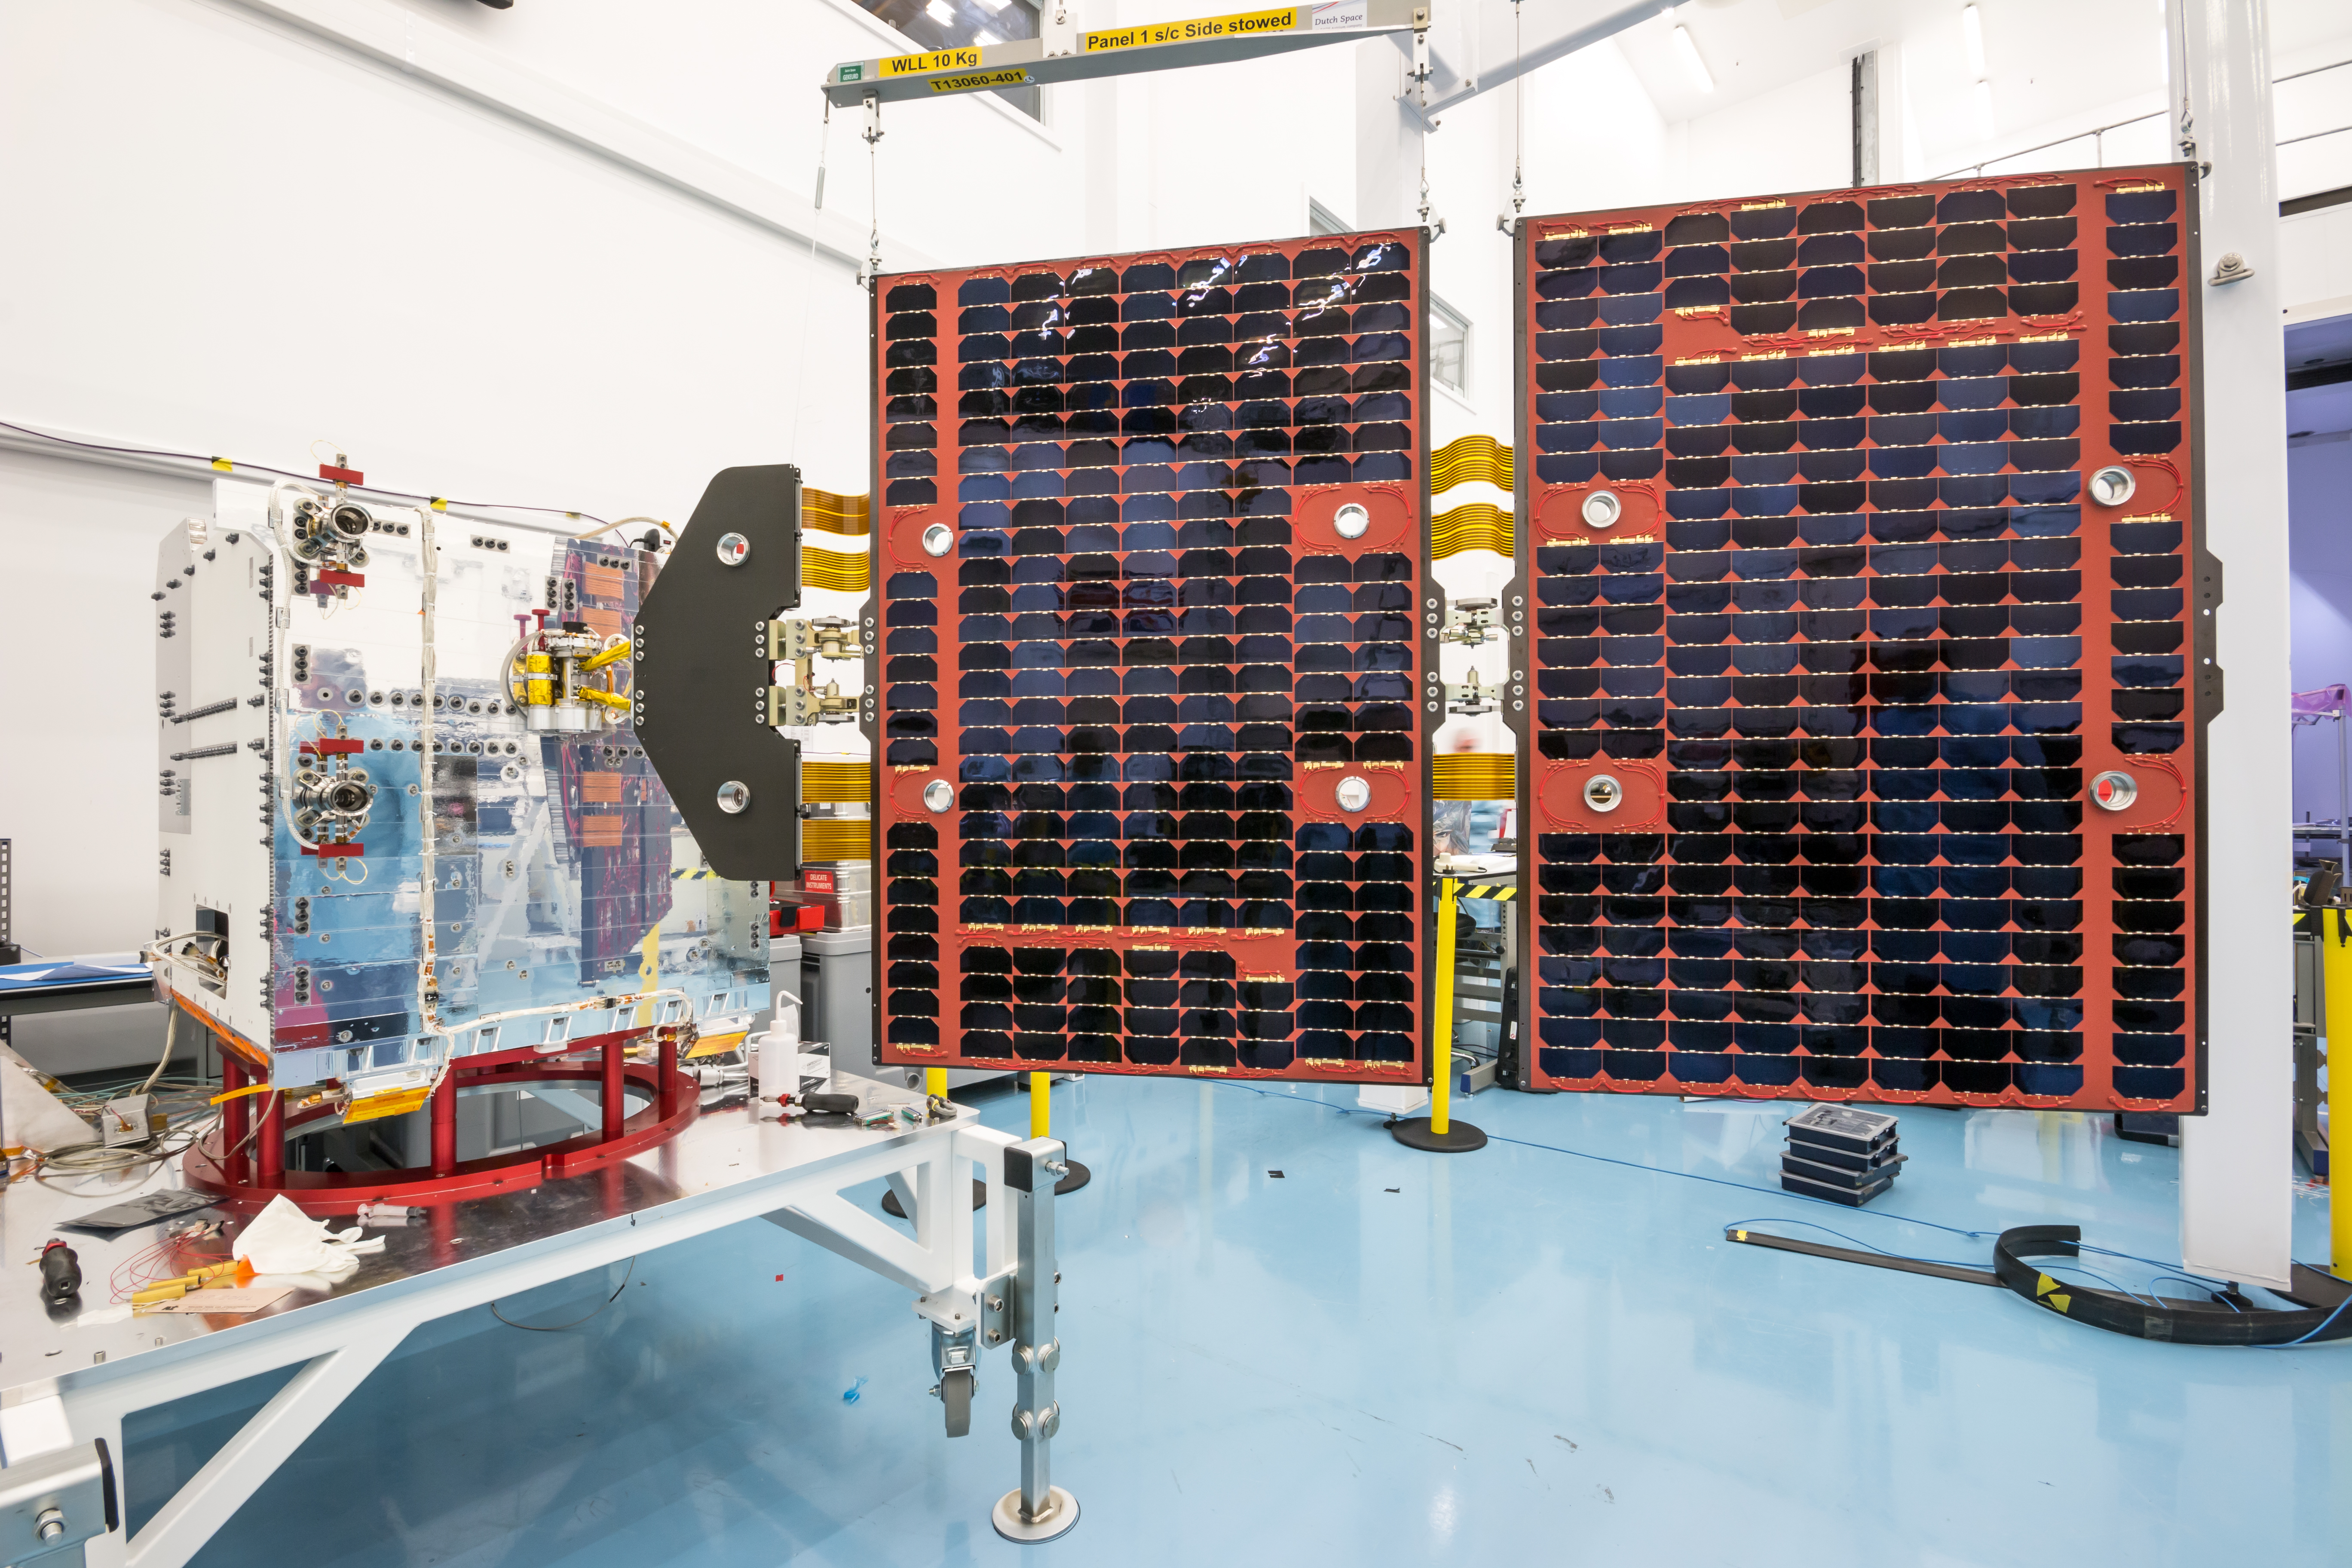 FORMOSAT-7 satellite in build at SSTL. Credit SSTL.